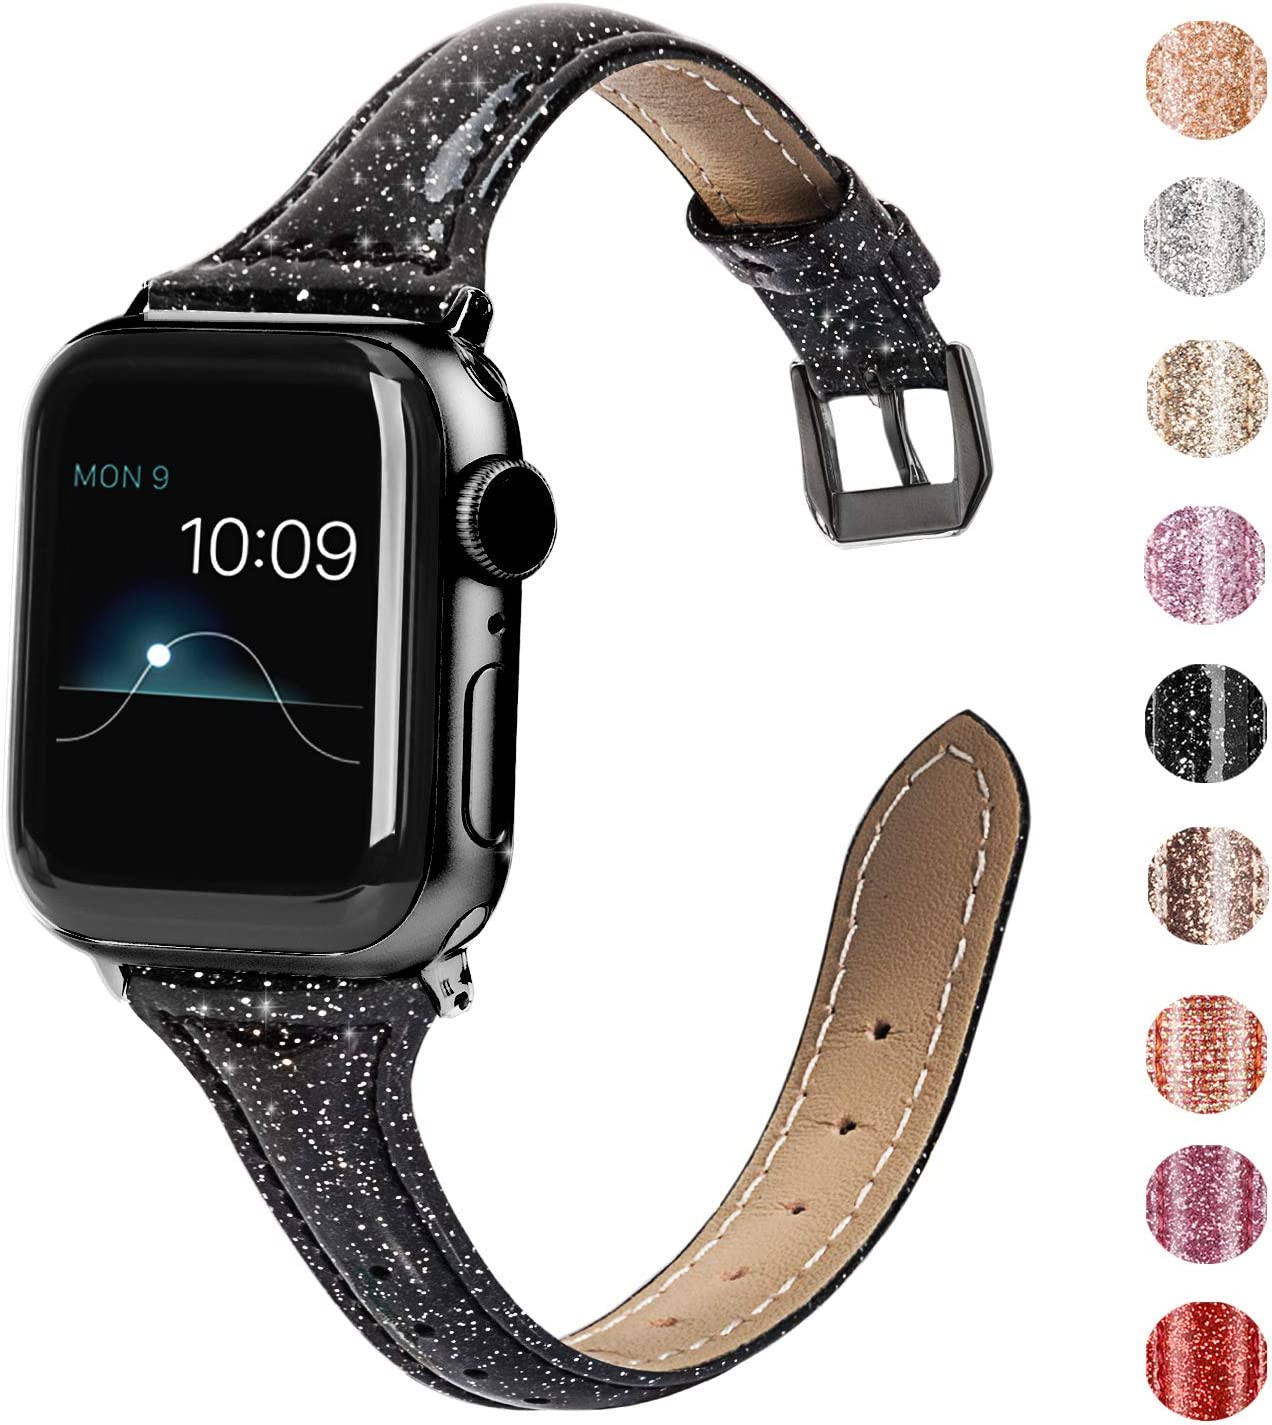 Wearlizer Black Thin Leather Compatible with Apple Watch Slim Bands 38mm 40mm for iWatch SE Womens Mens Strap Classic Wristband Slim Replacement (Stainless Steel Black Clasp) Series 6 5 4 3 2 1 Sport